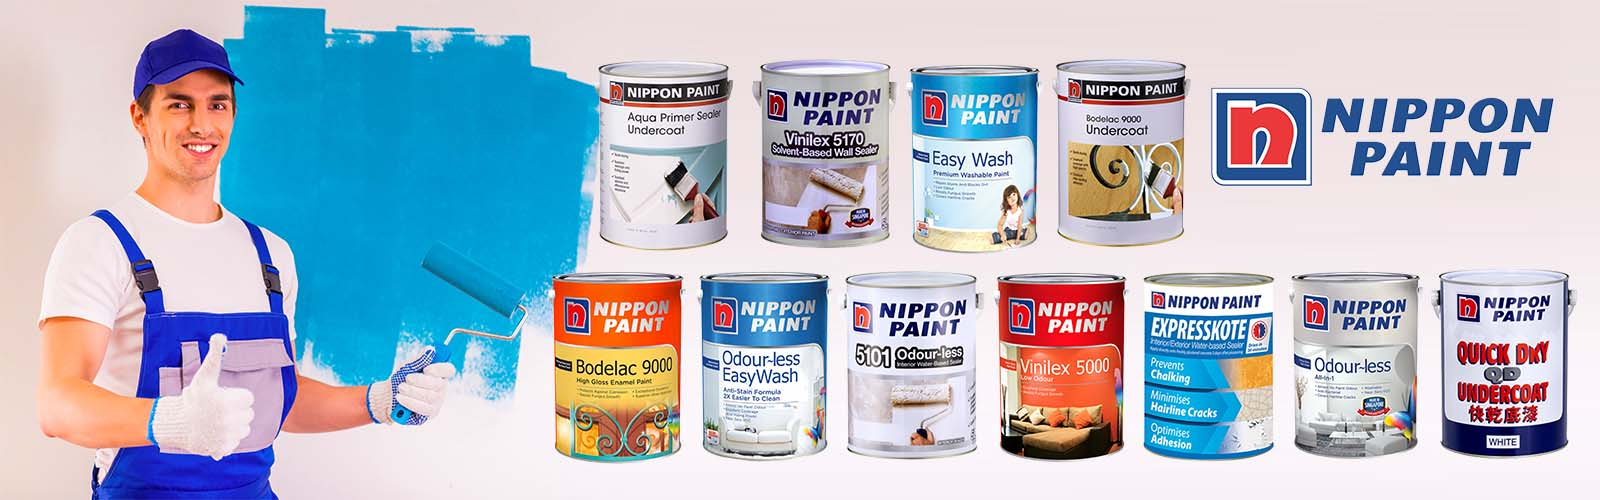 Nippon Paint Shop - Best Paint Store in Singapore